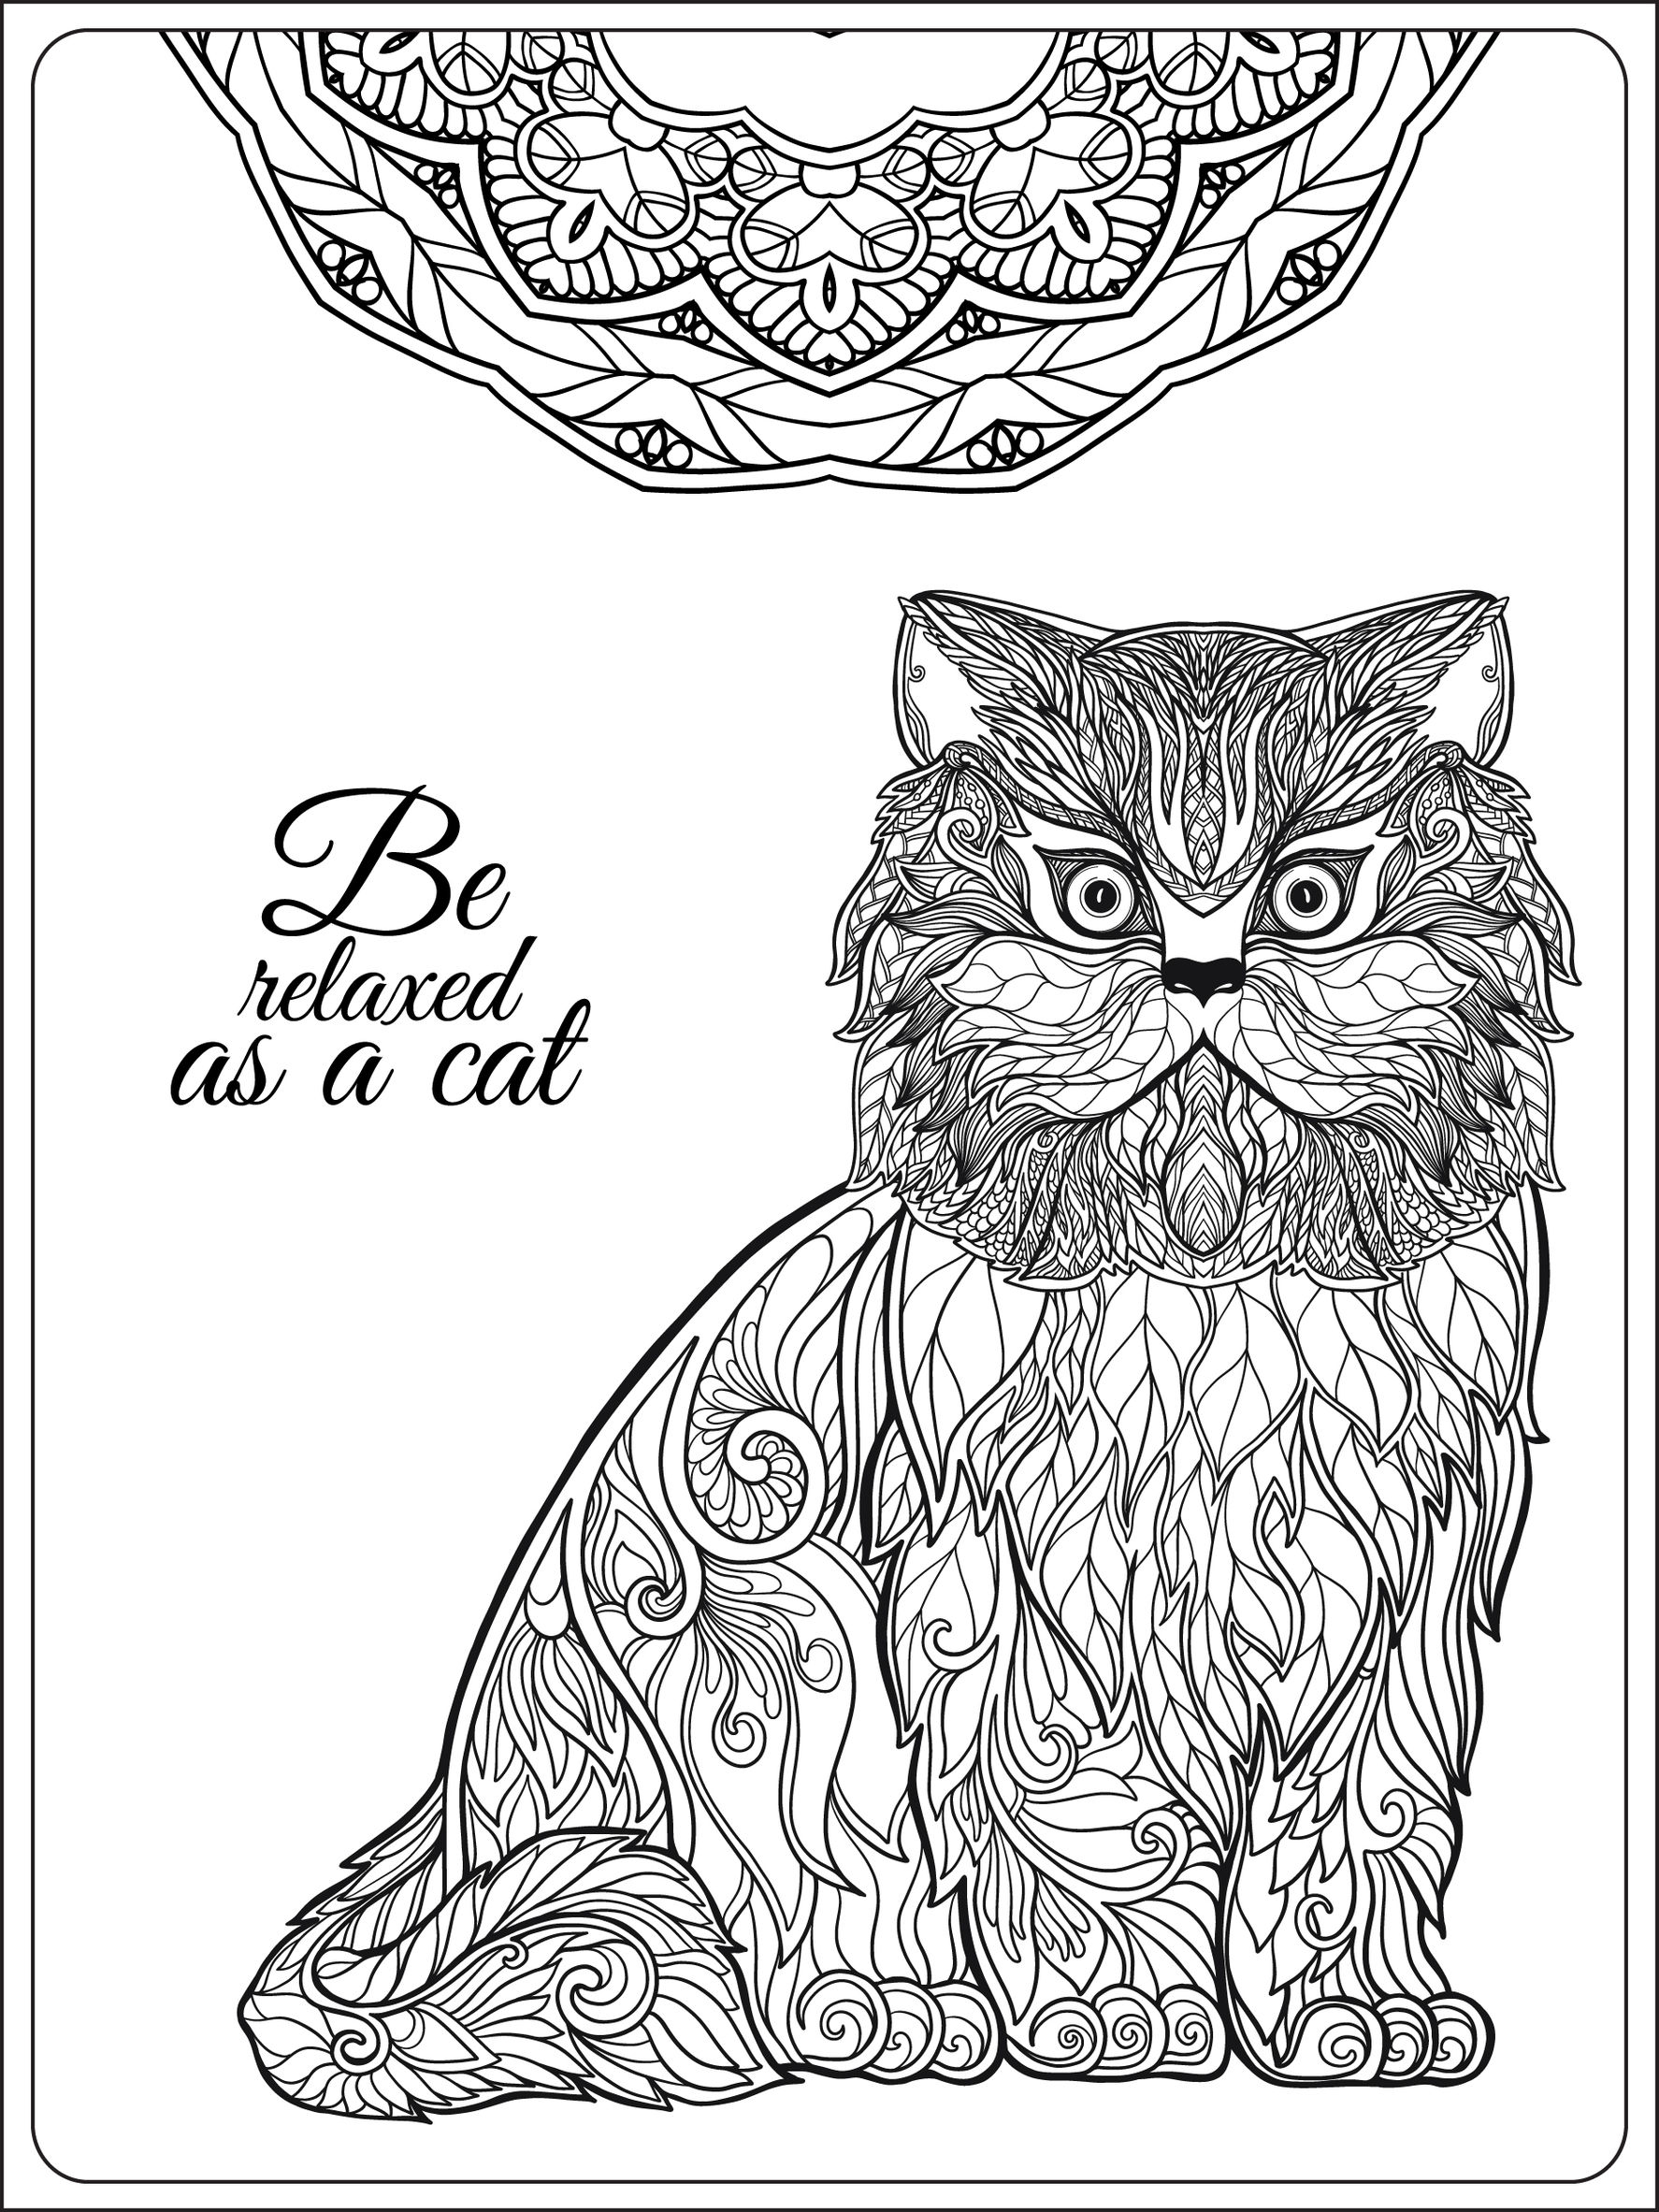 Be relaxing as a cat by elena besedina - Cats - Coloring pages for ...